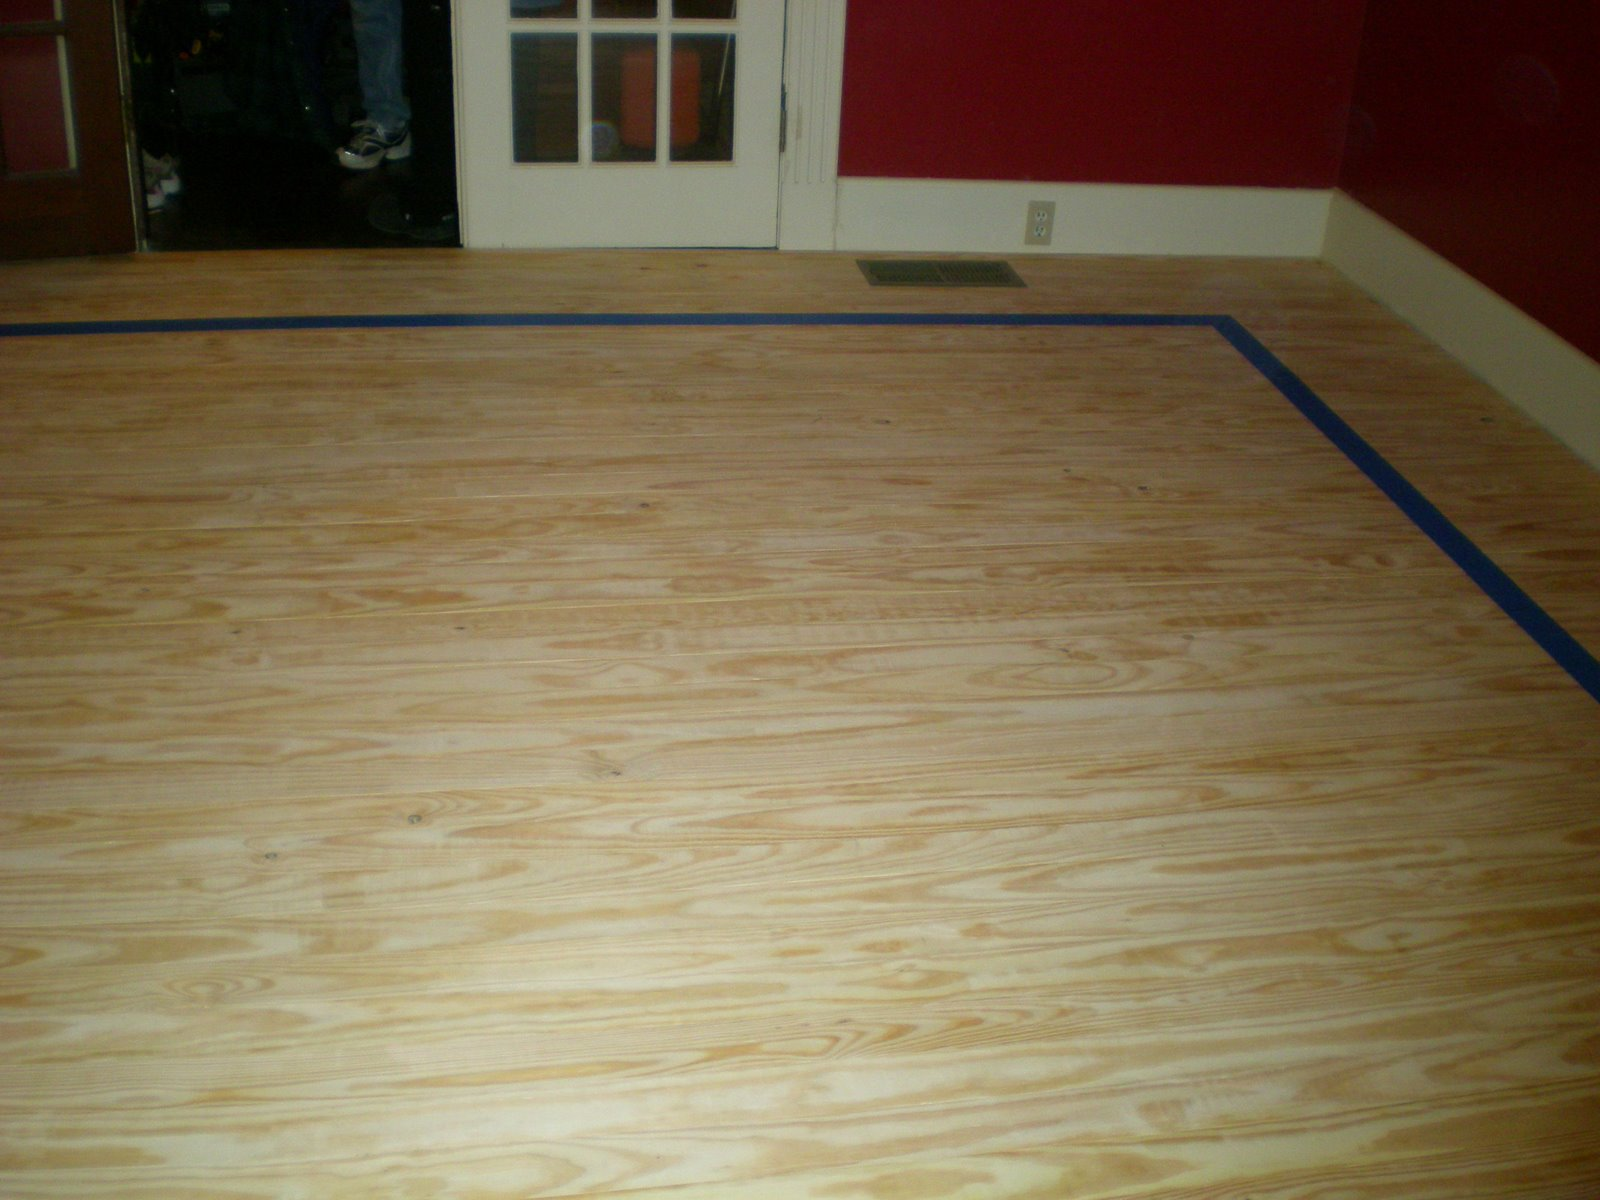 Stained plywood flooring